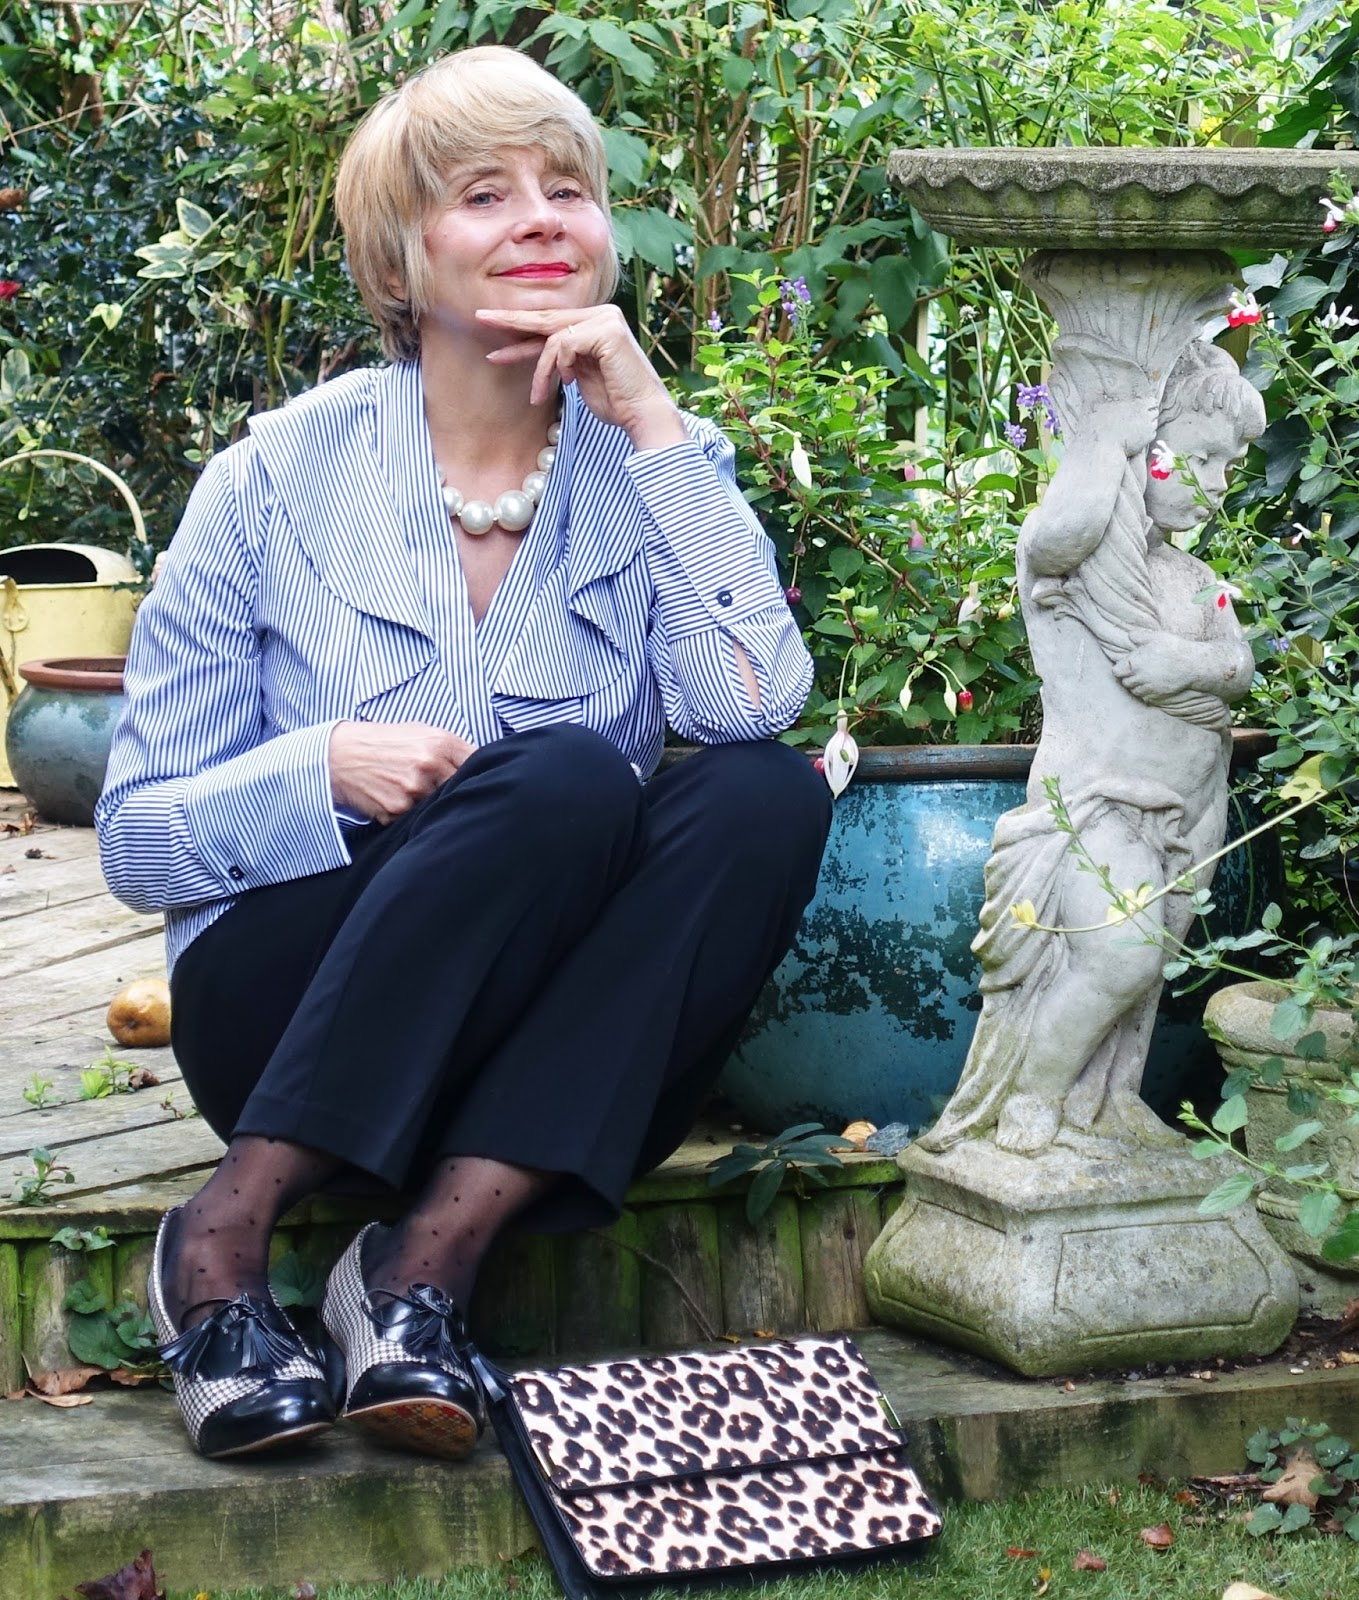 Gail Hanlon from Is This Mutton pairs a statement striped shirt with houndstooth shoes for a contemporary fashion look for the over 40s